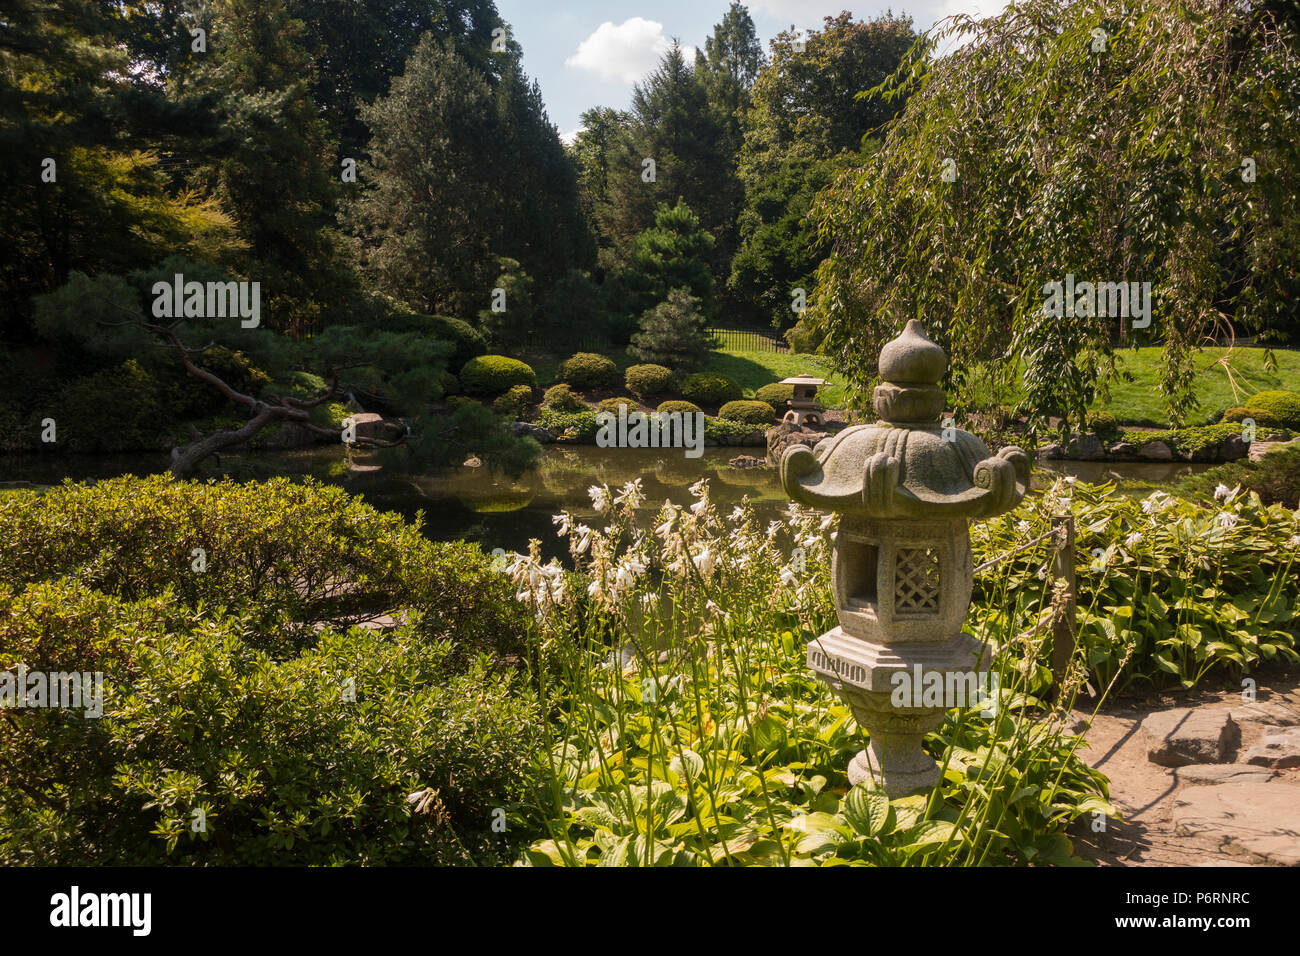 Landscape Of Fairmount Park Stock Photos & Landscape Of Fairmount ...